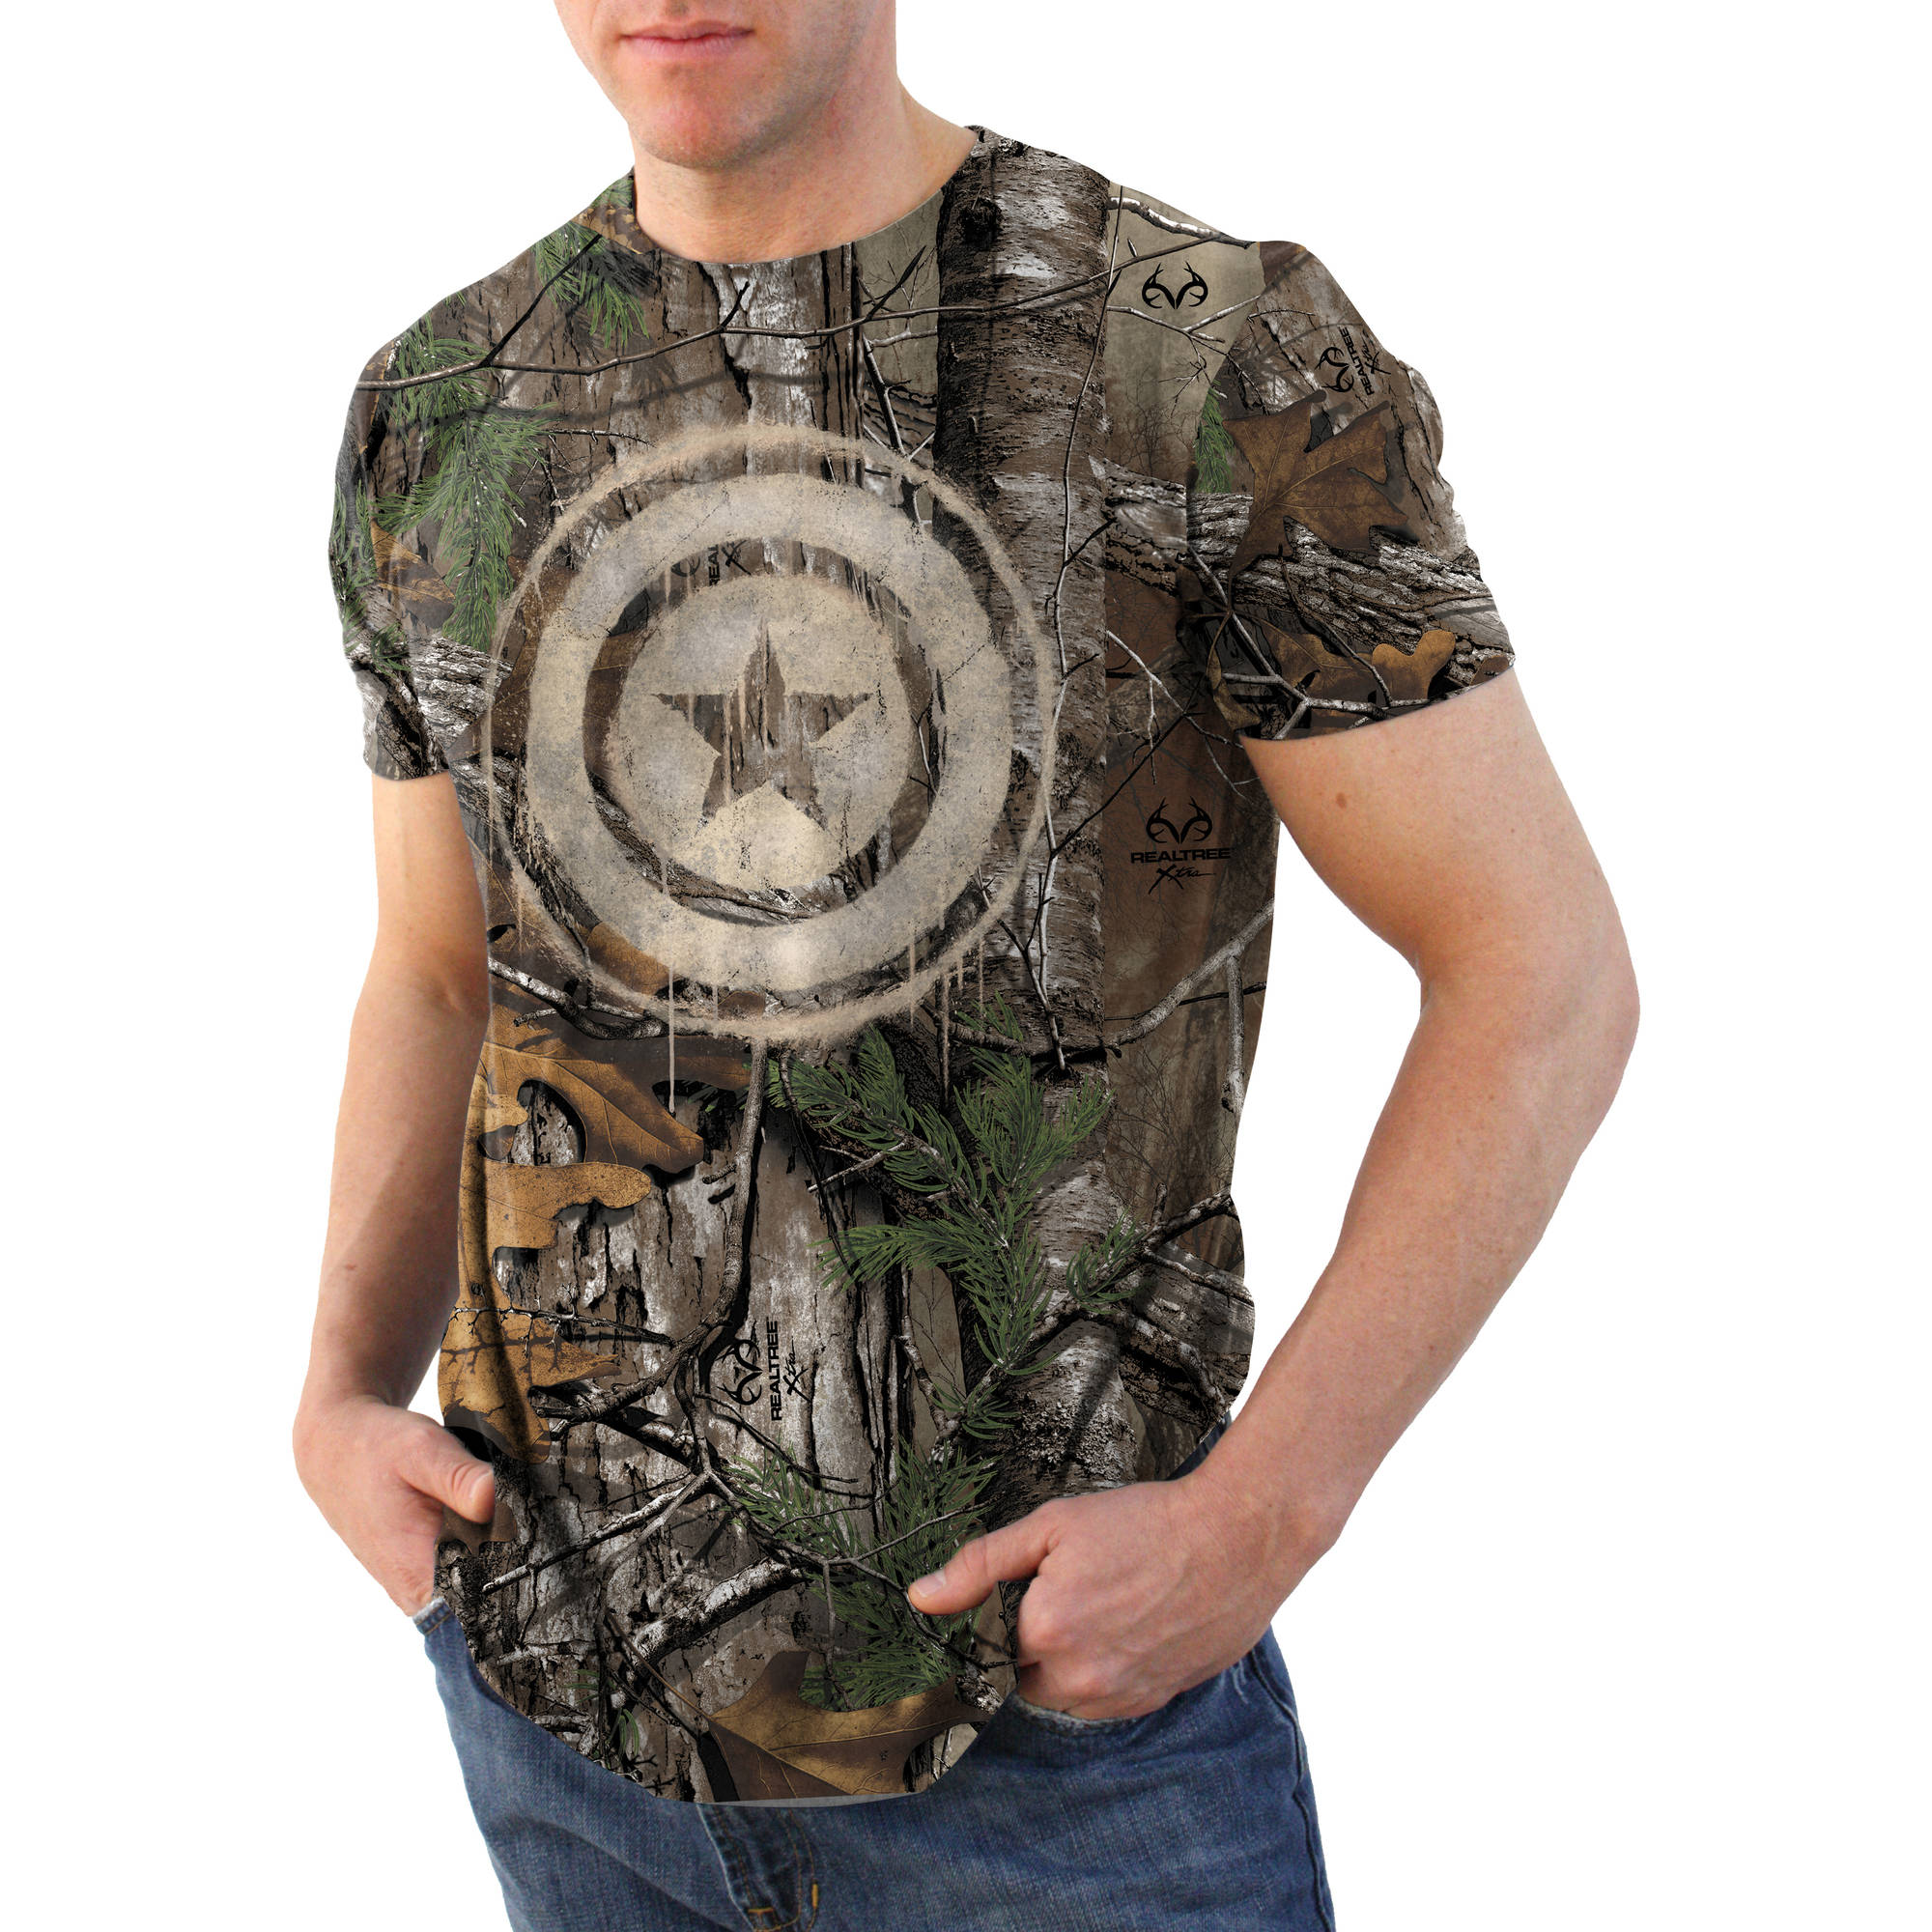 Captain America Realtree Camo Men's Graphic Tee